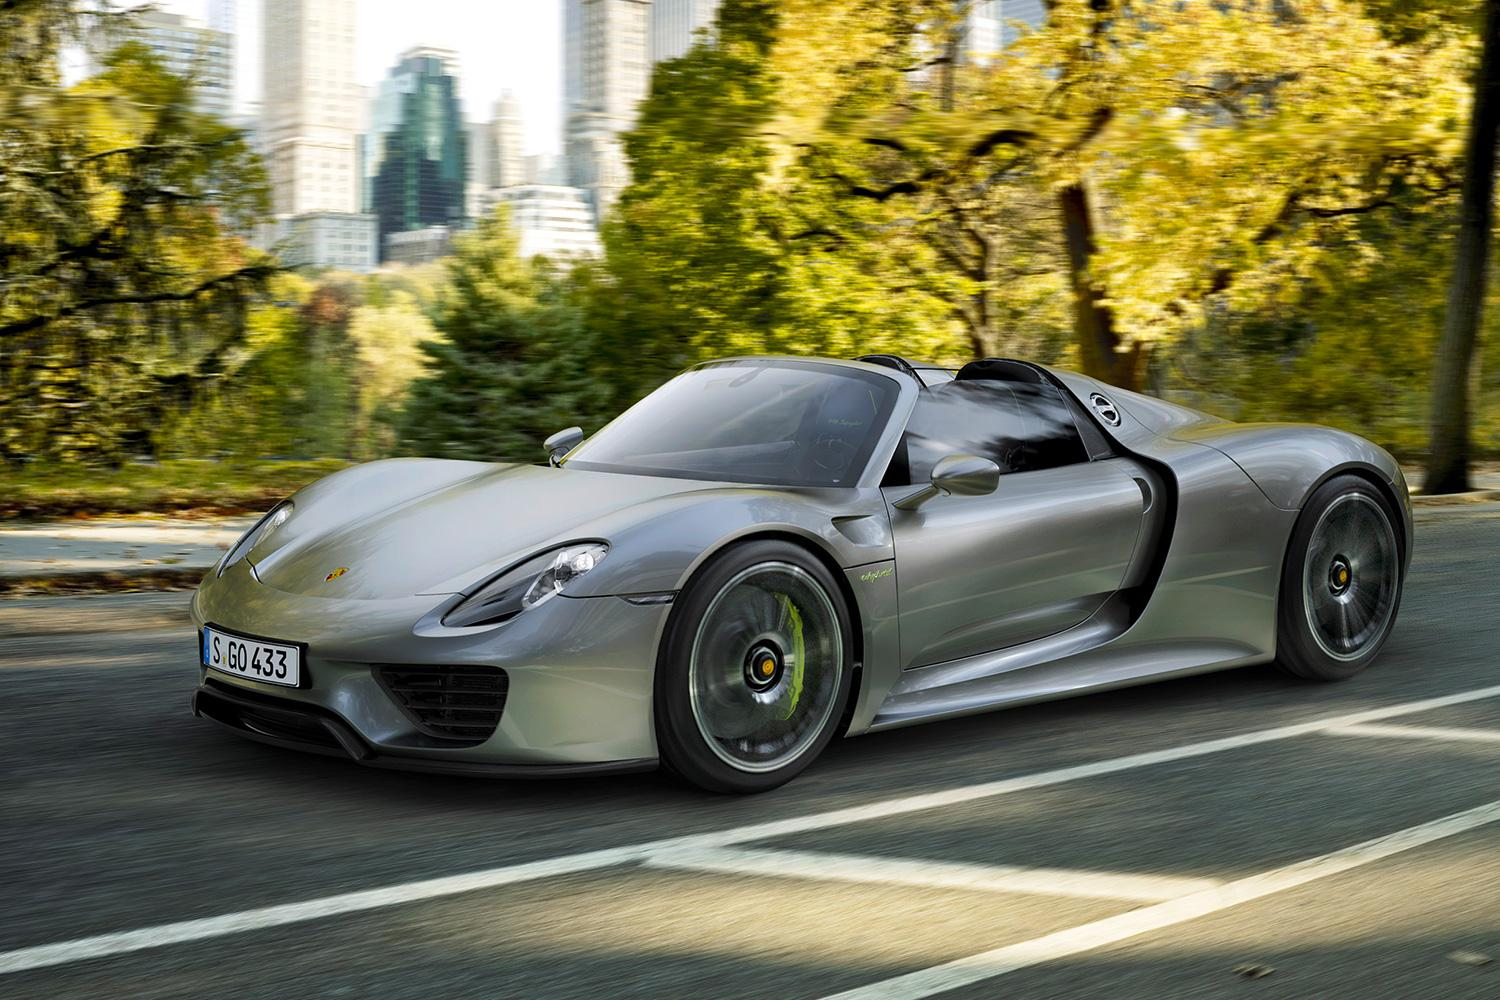 used cars porsche 918 spyder yearling cars in your city. Black Bedroom Furniture Sets. Home Design Ideas